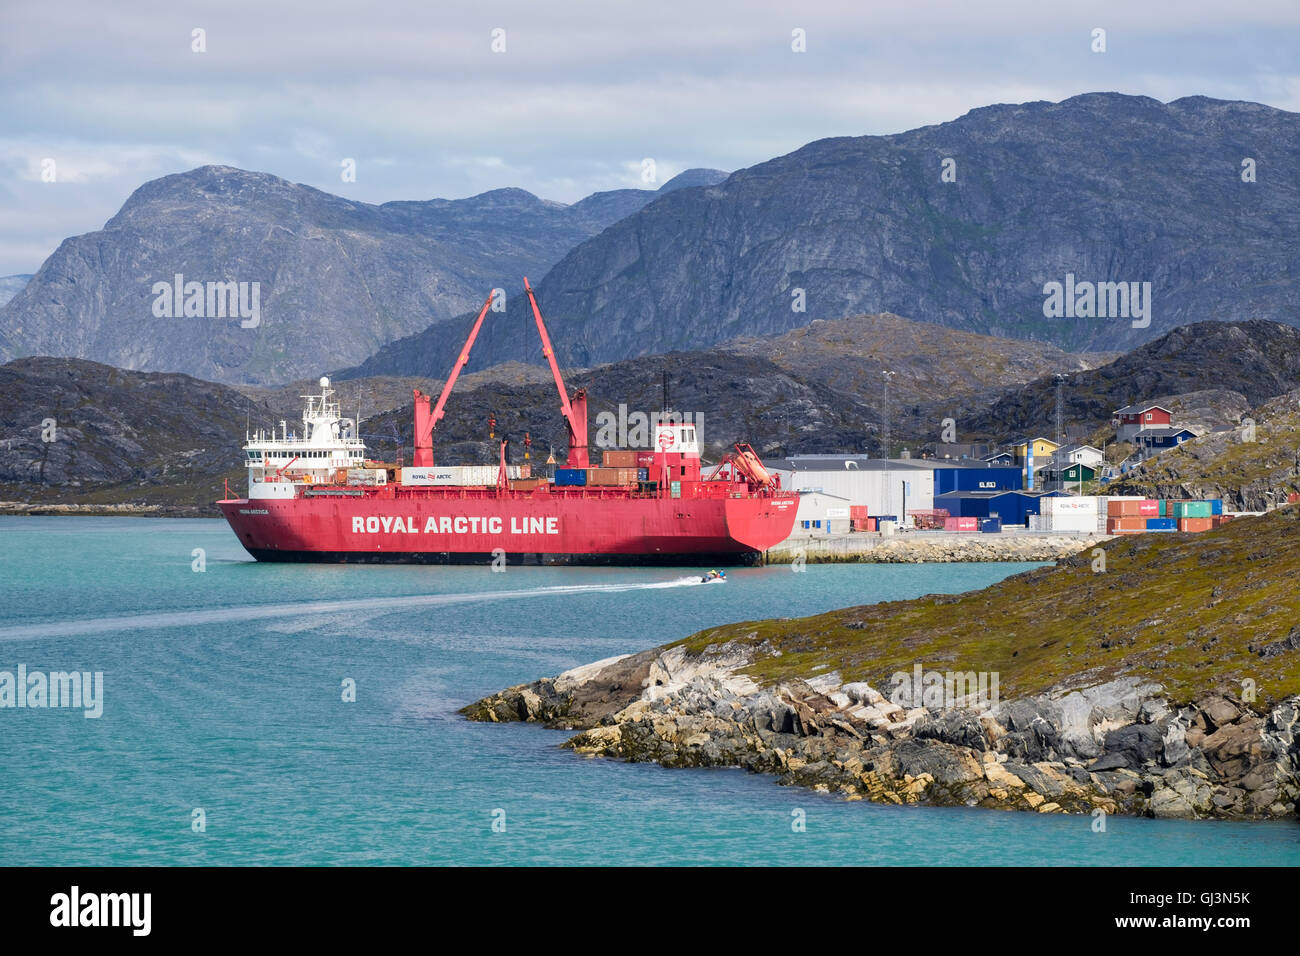 Arctic Line : Royal arctic line cargo ship irena arctica docked and unloading in